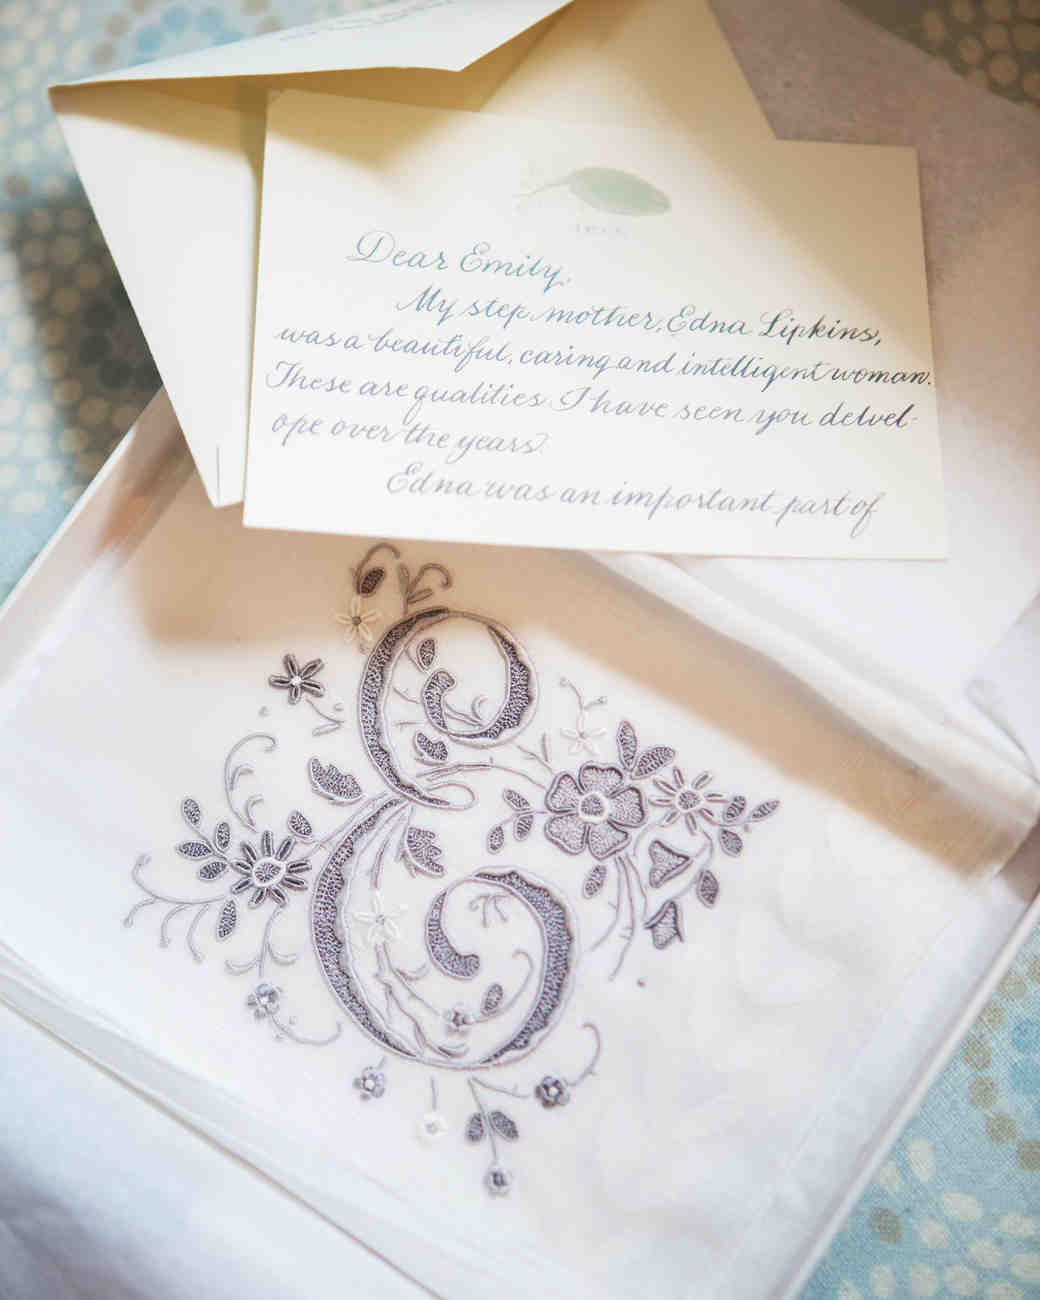 emily-matthew-wedding-handkerchief-0240-s112720-0316.jpg